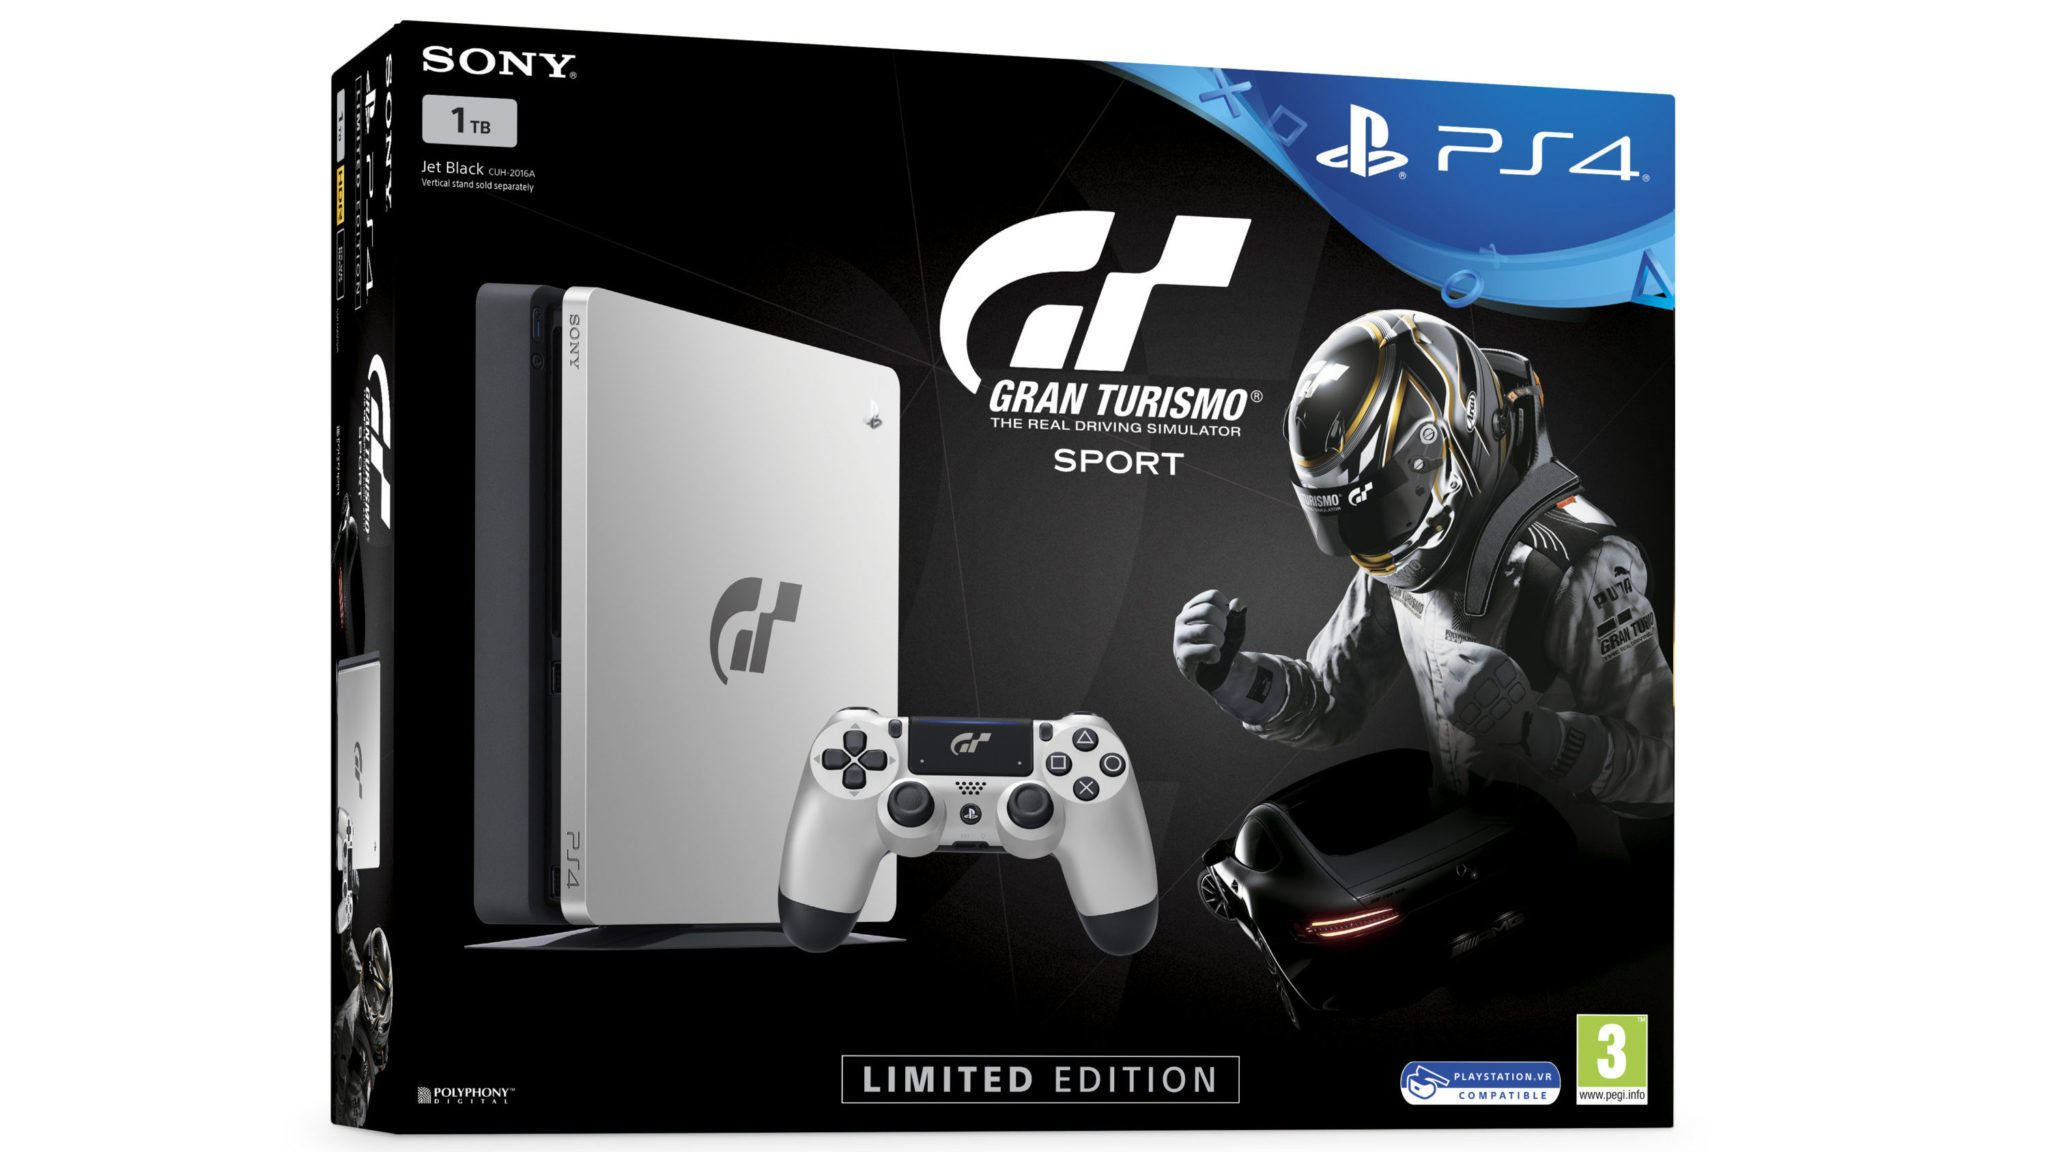 sony reveals limited edition gran turismo sport ps4. Black Bedroom Furniture Sets. Home Design Ideas